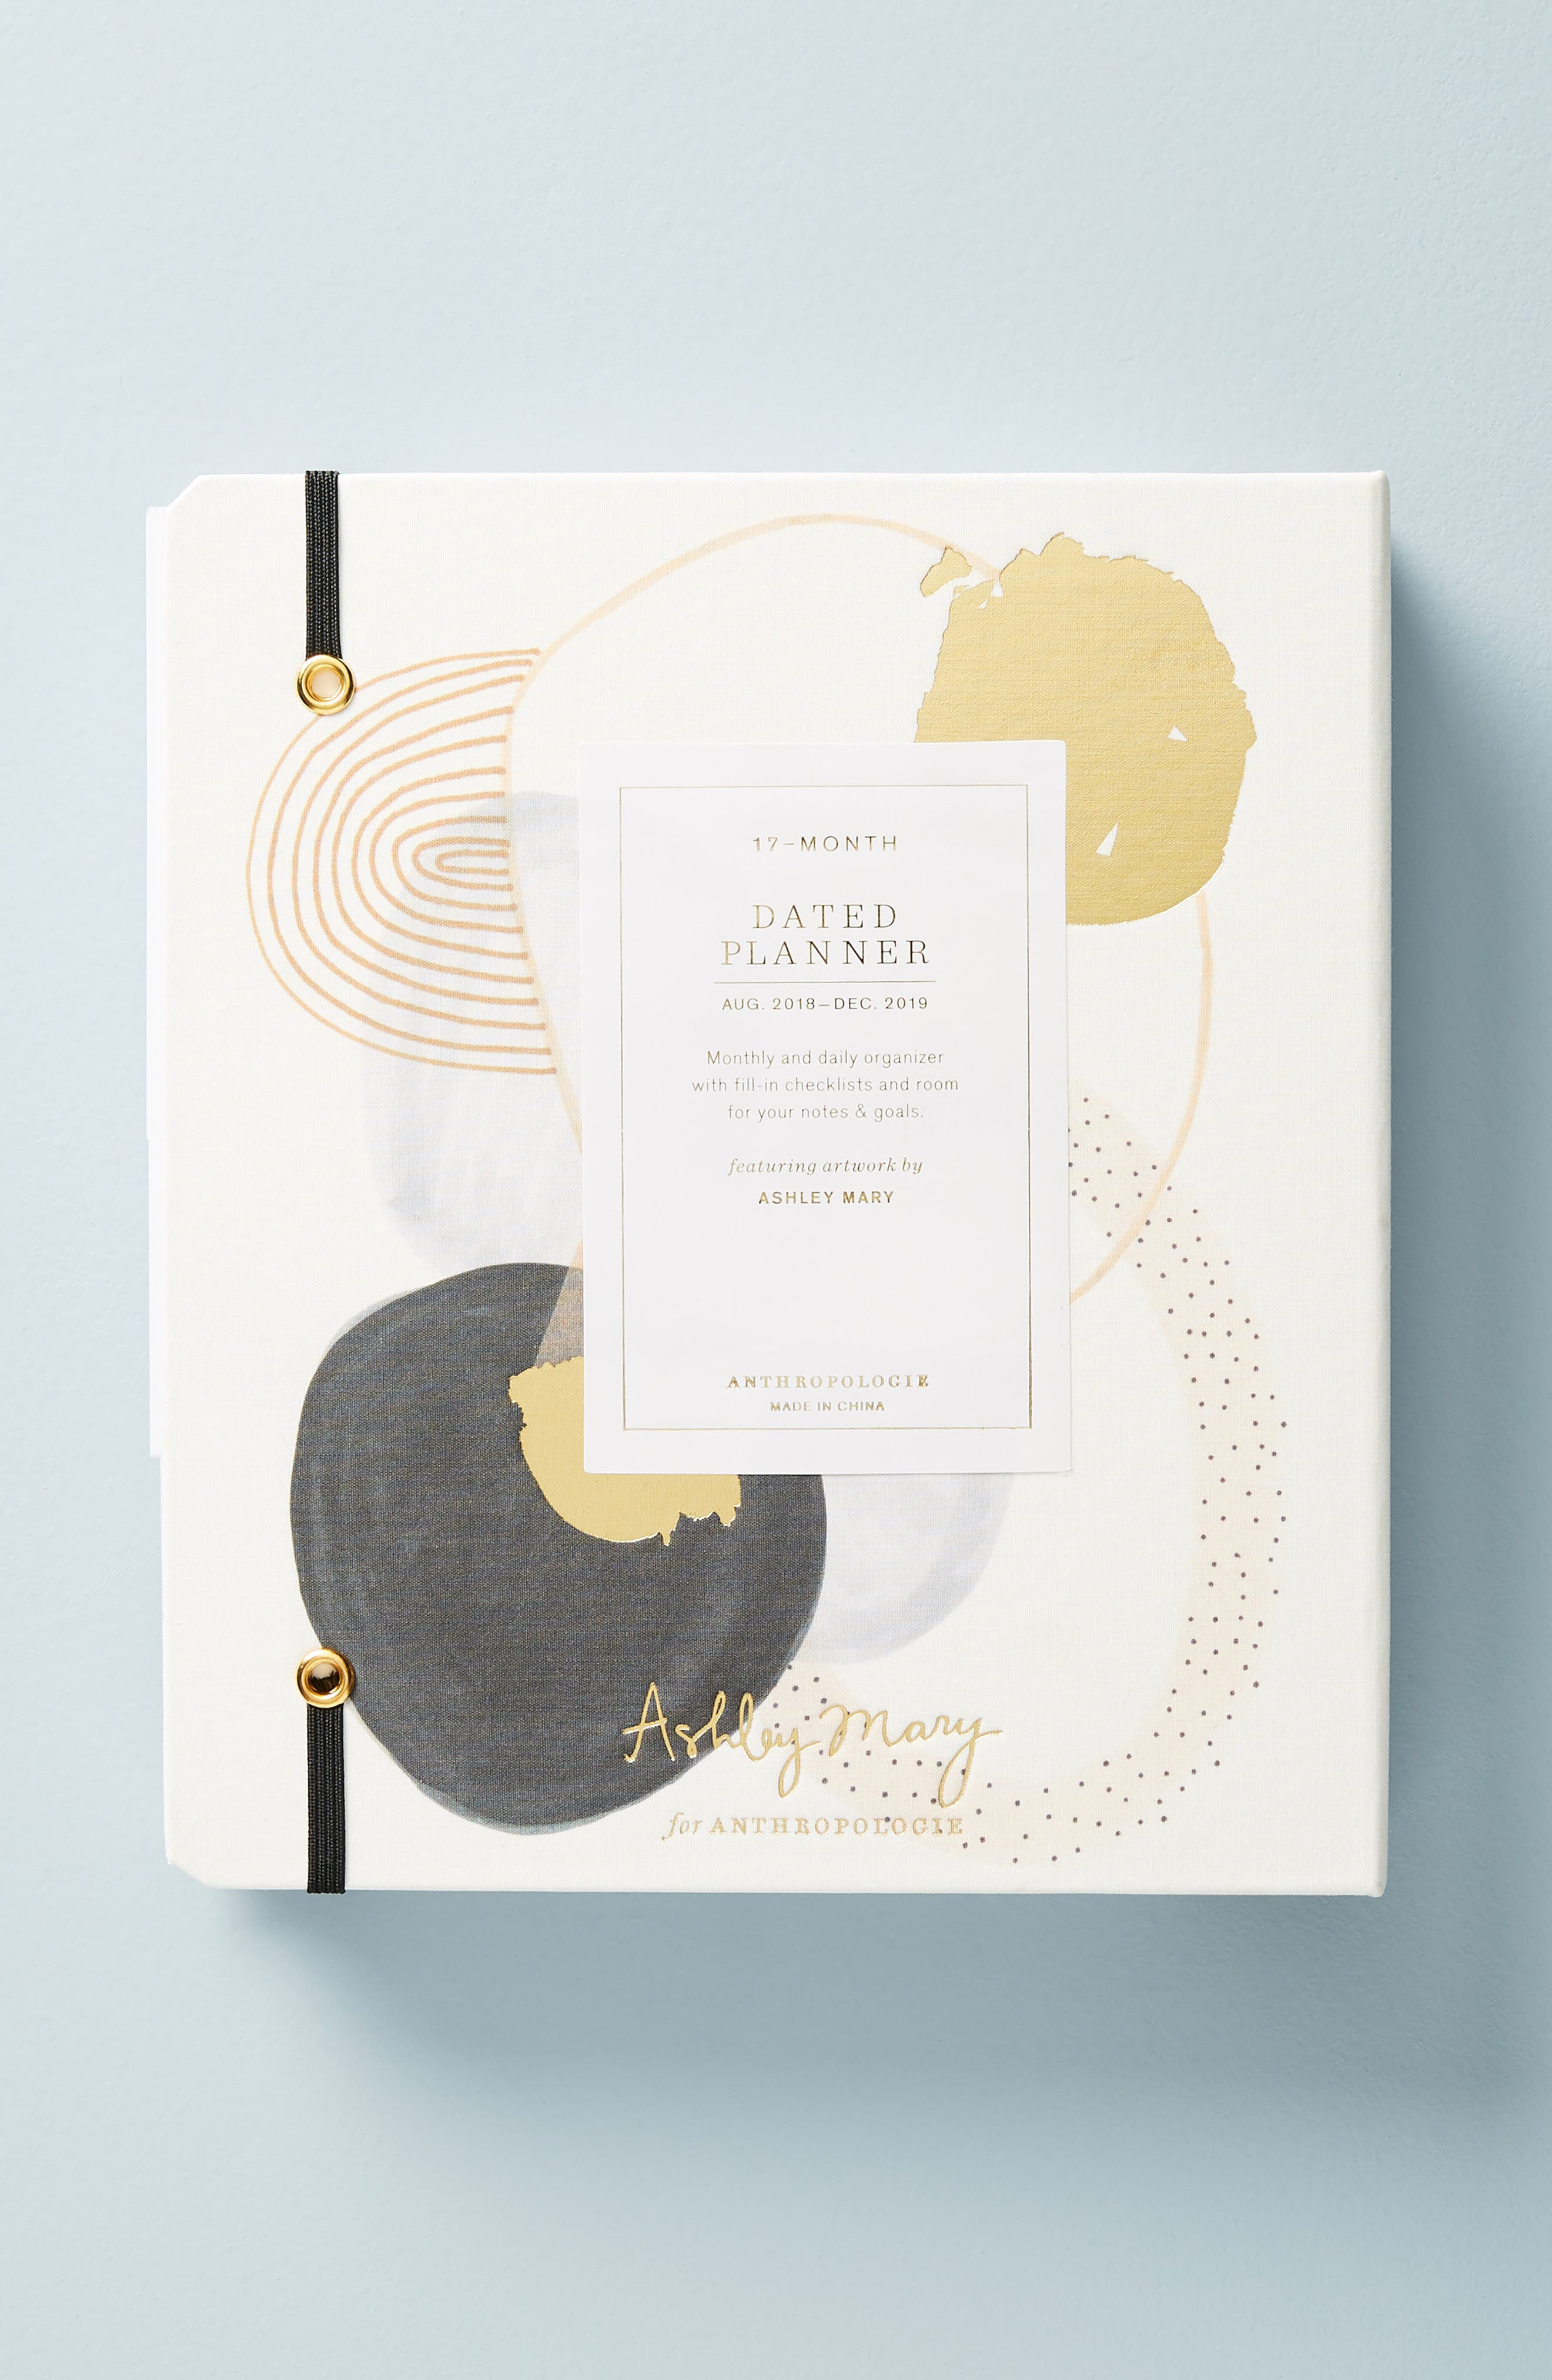 Ashley Mary 17-Month Hardcover Planner,                             Alternate thumbnail 4, color,                             MULTI